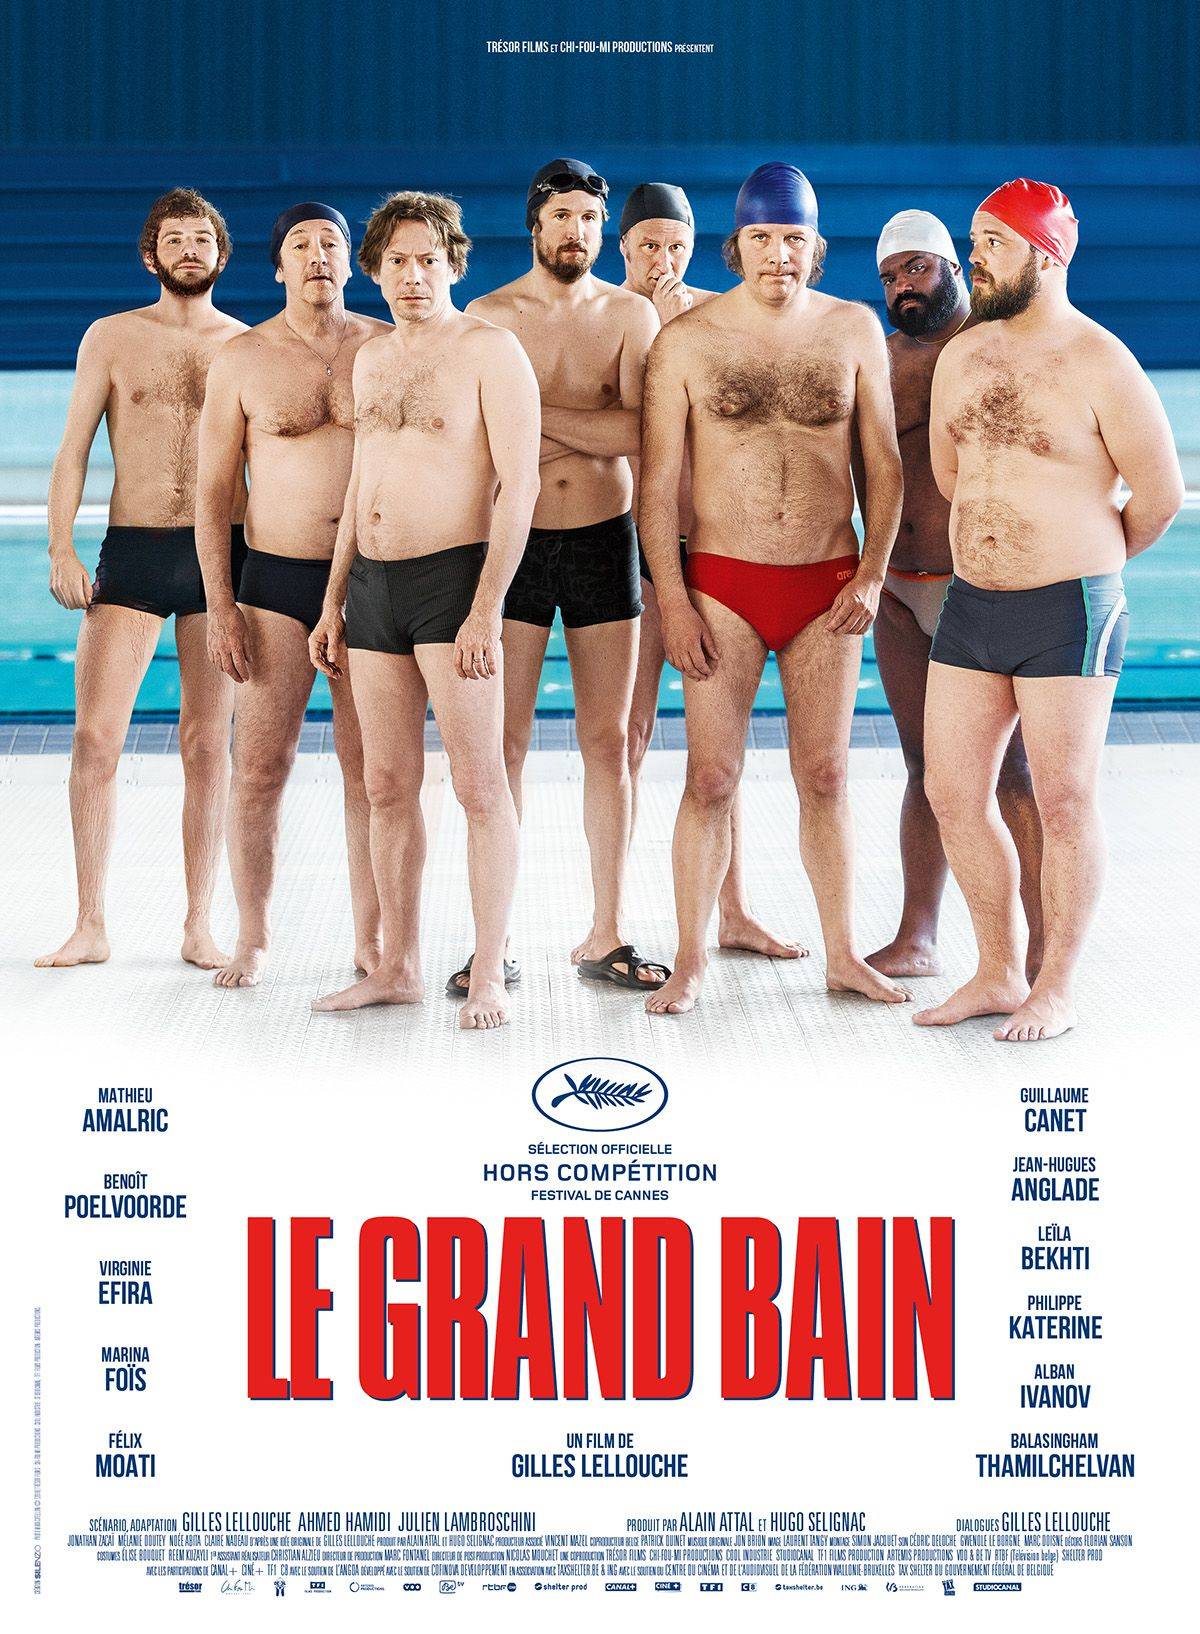 Le Grand Bain - Film (2018) streaming VF gratuit complet